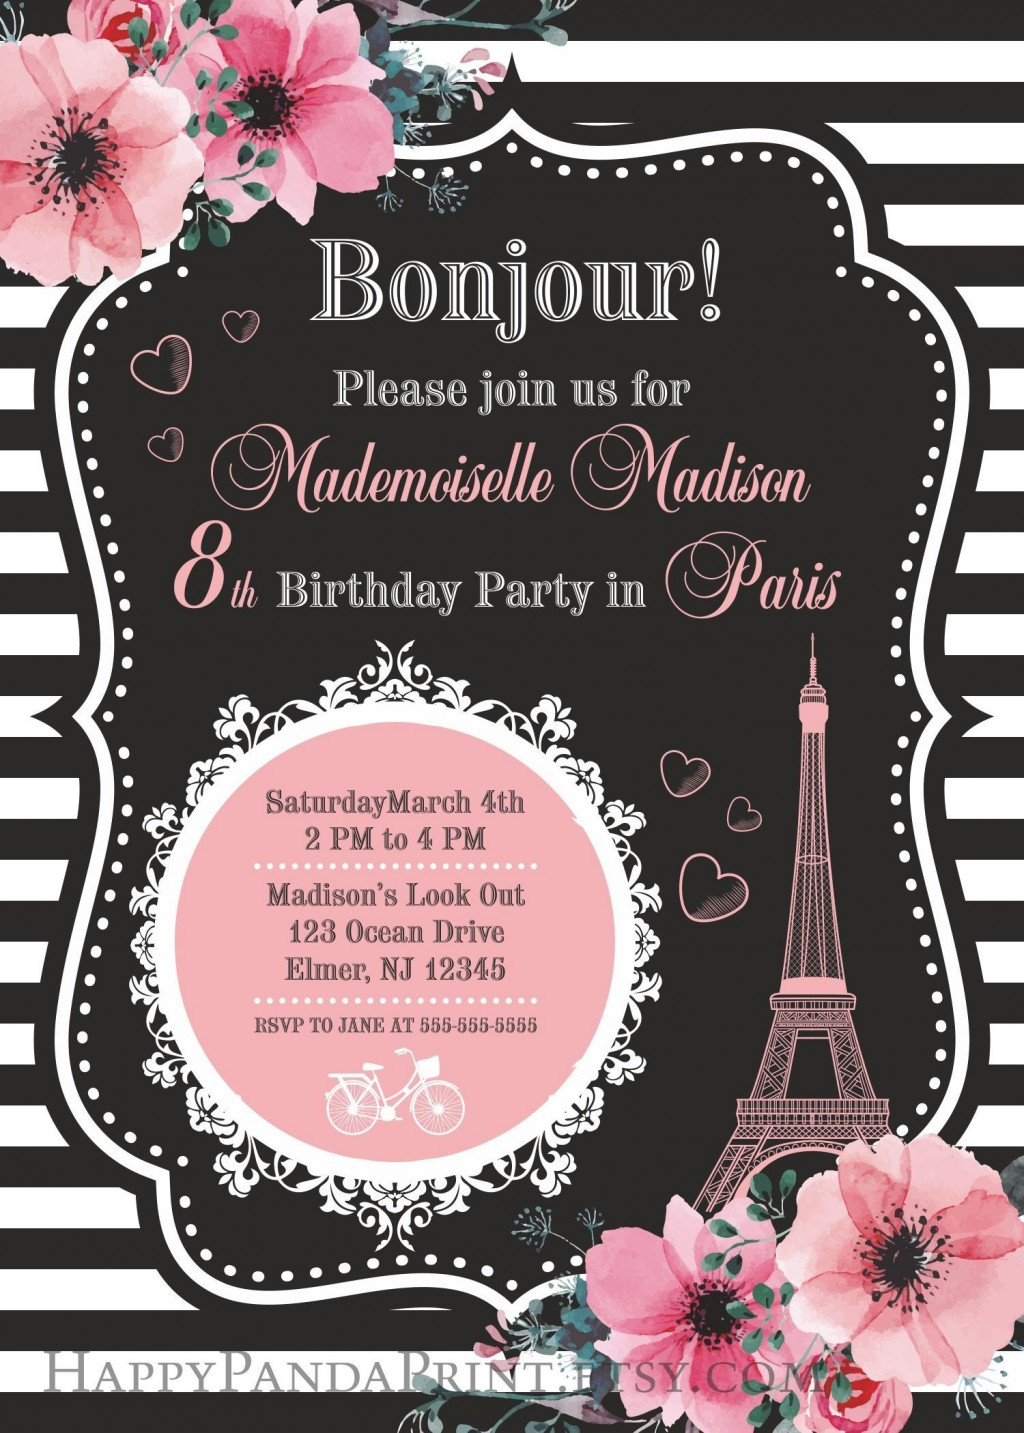 003 Stunning Free Pari Birthday Party Invitation Template Highest Clarity  TemplatesLarge